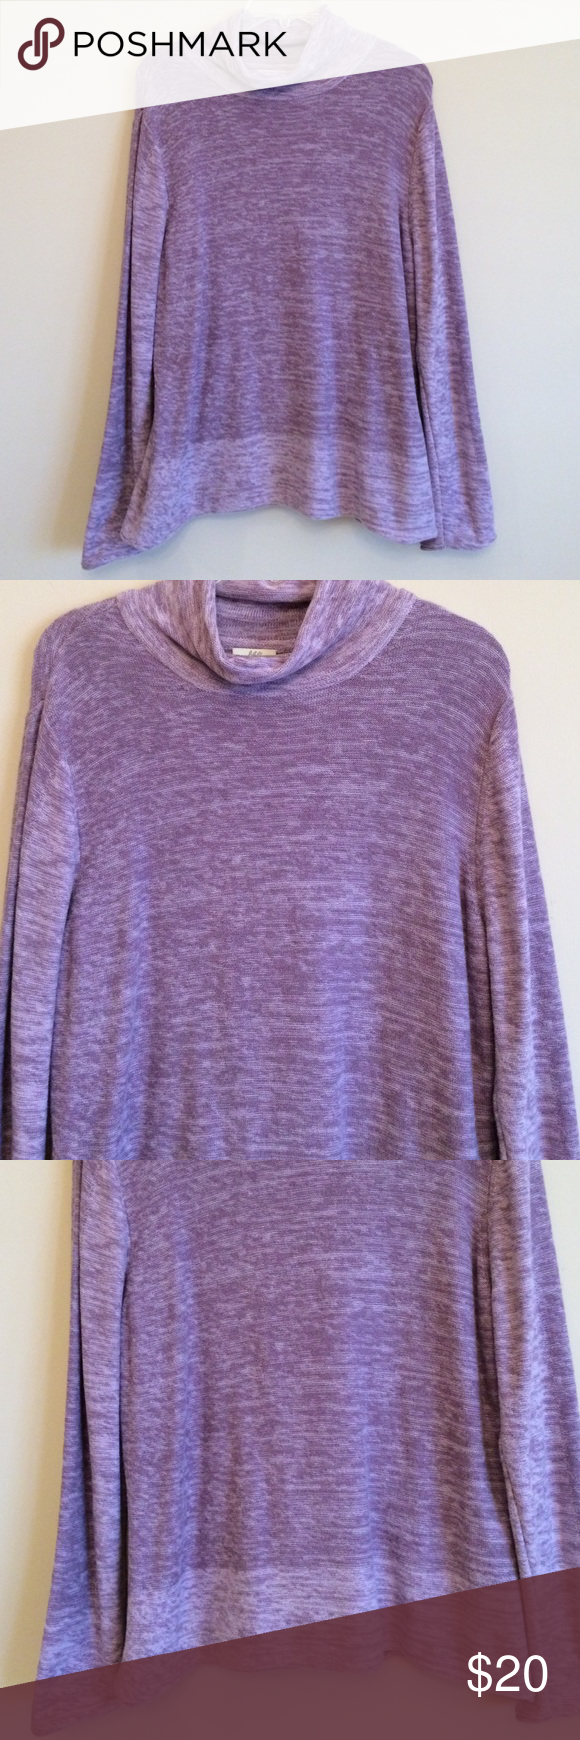 J Jill Purple Color Block Sweater Top | Light colors, Color ...